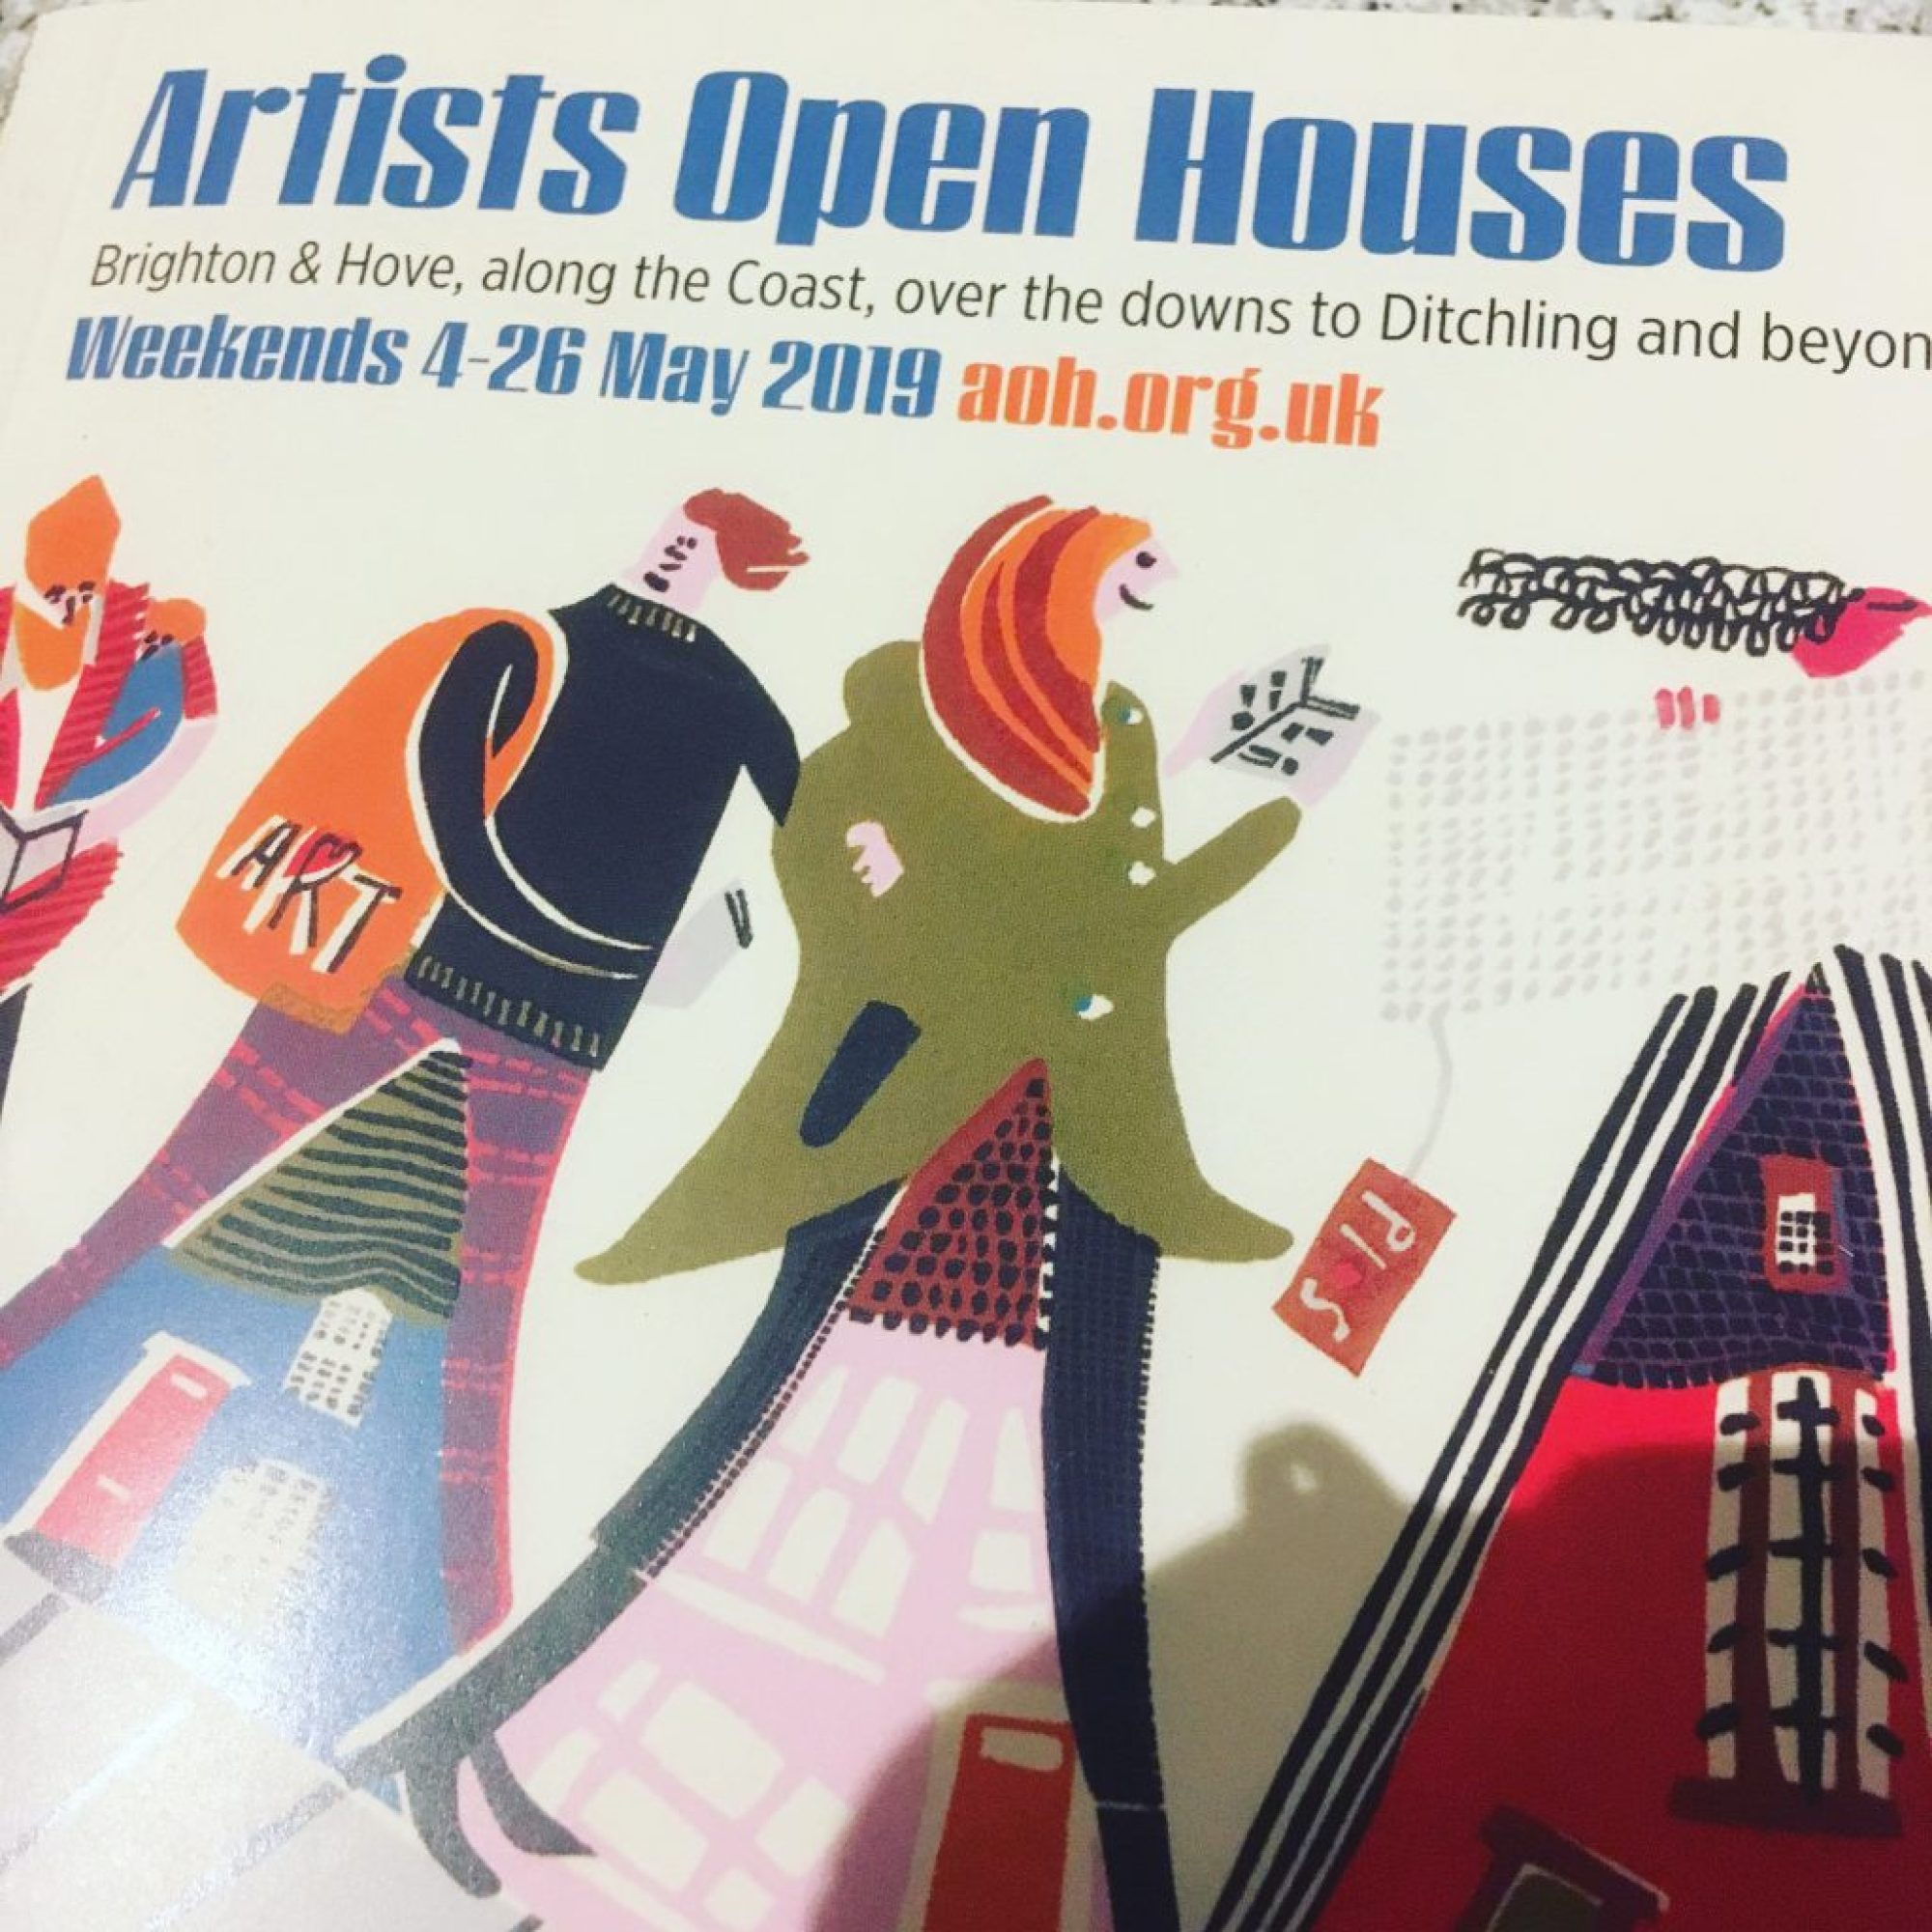 Artists Open Houses Brighton